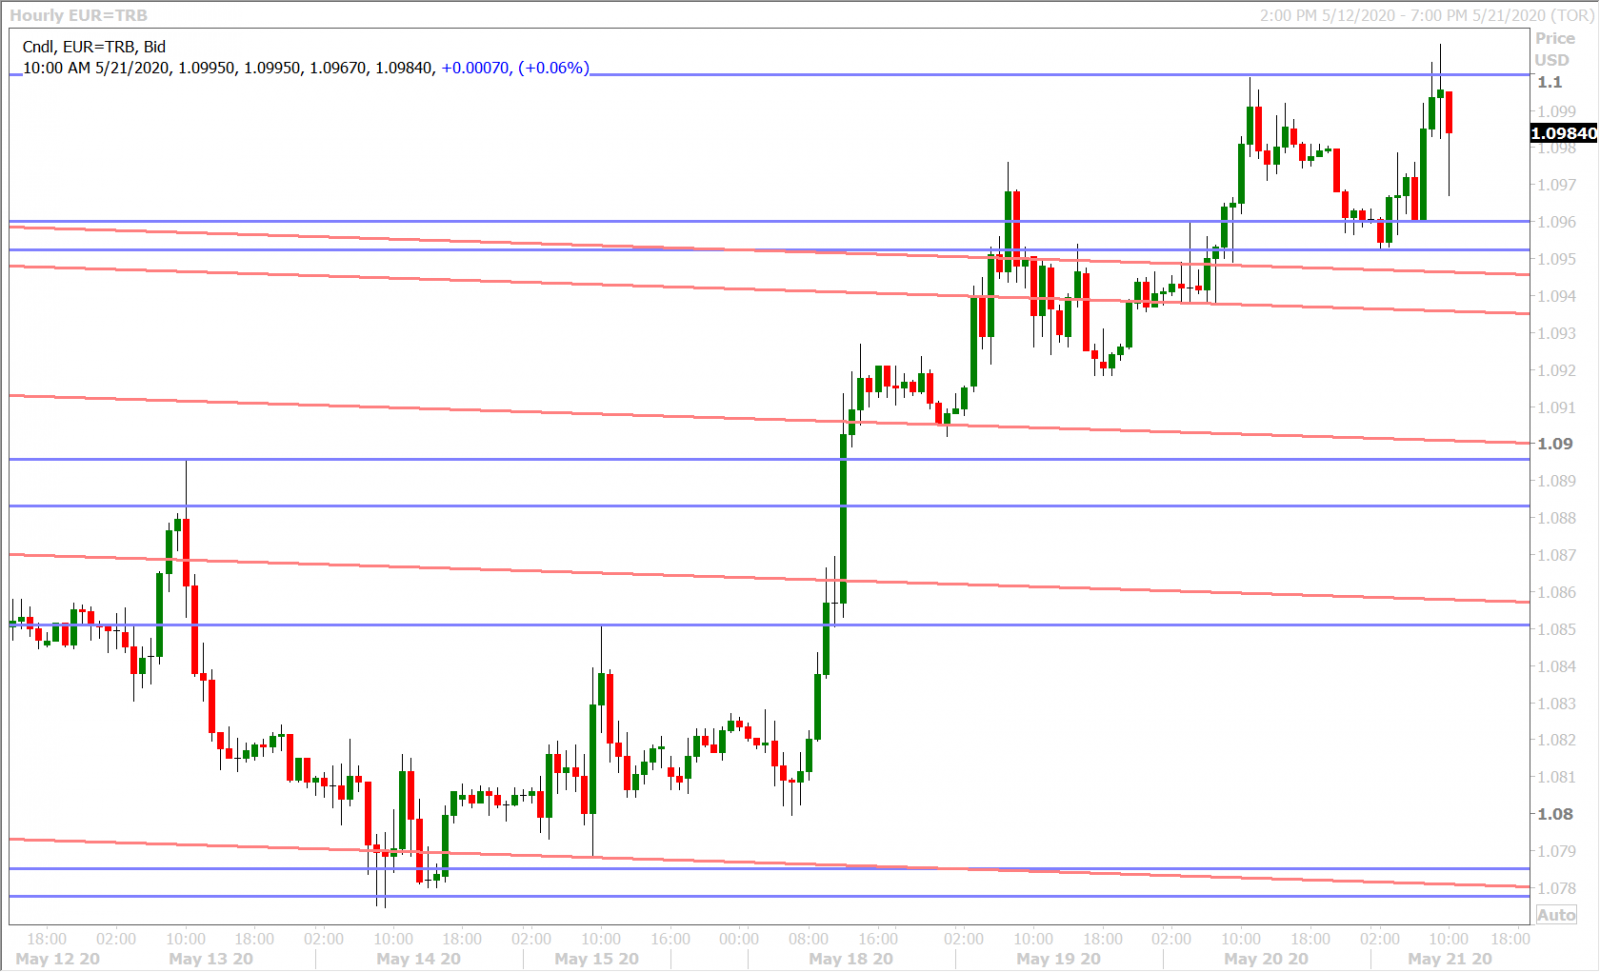 EURUSD HOURLY